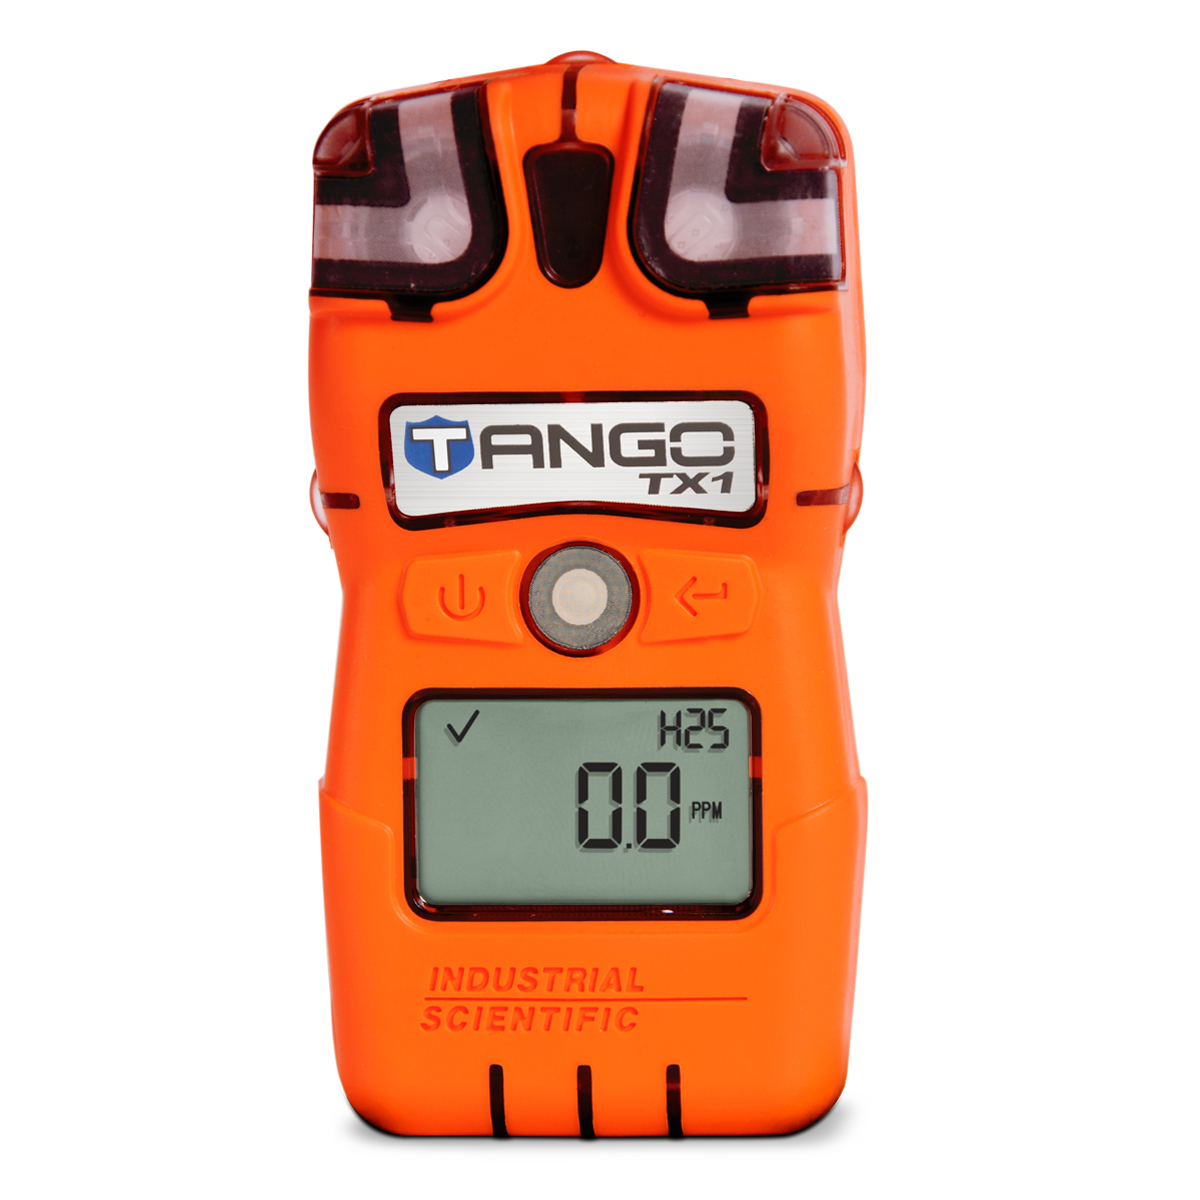 TANGO TX1 SINGLE-GAS DETECTOR